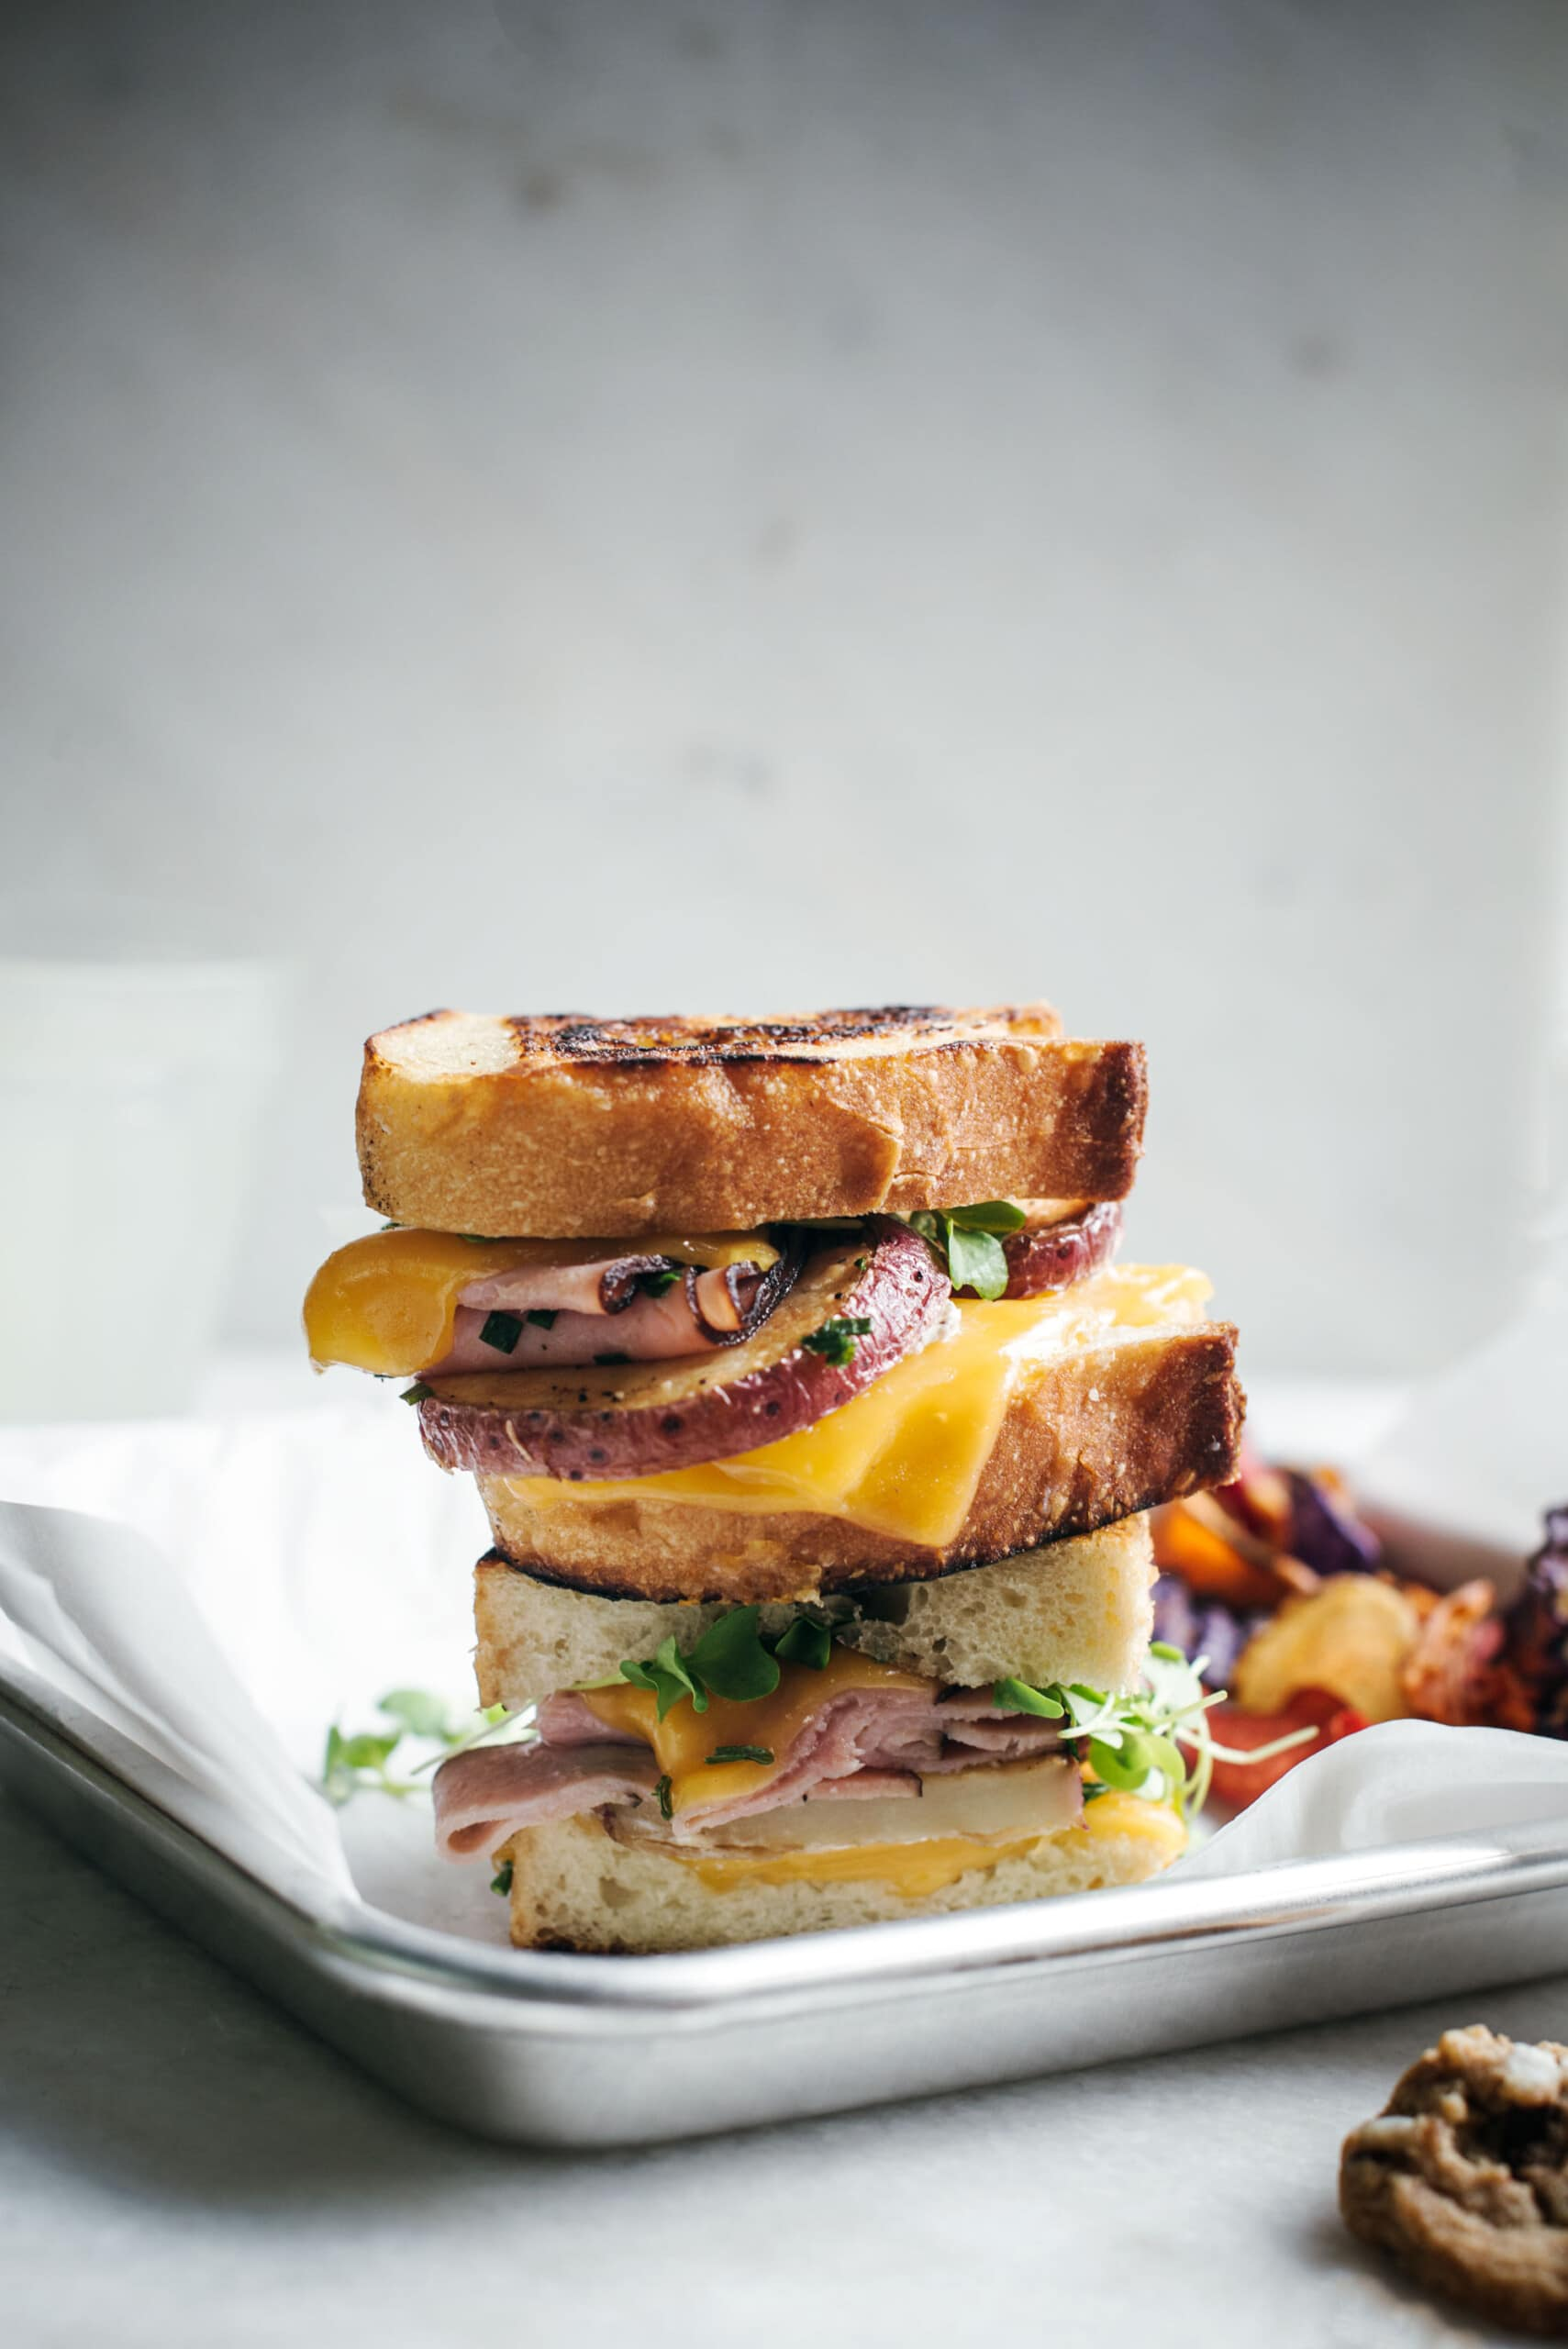 Kid-Friendly: Easy to Make Loaded Potato Grilled Cheese Sandwich